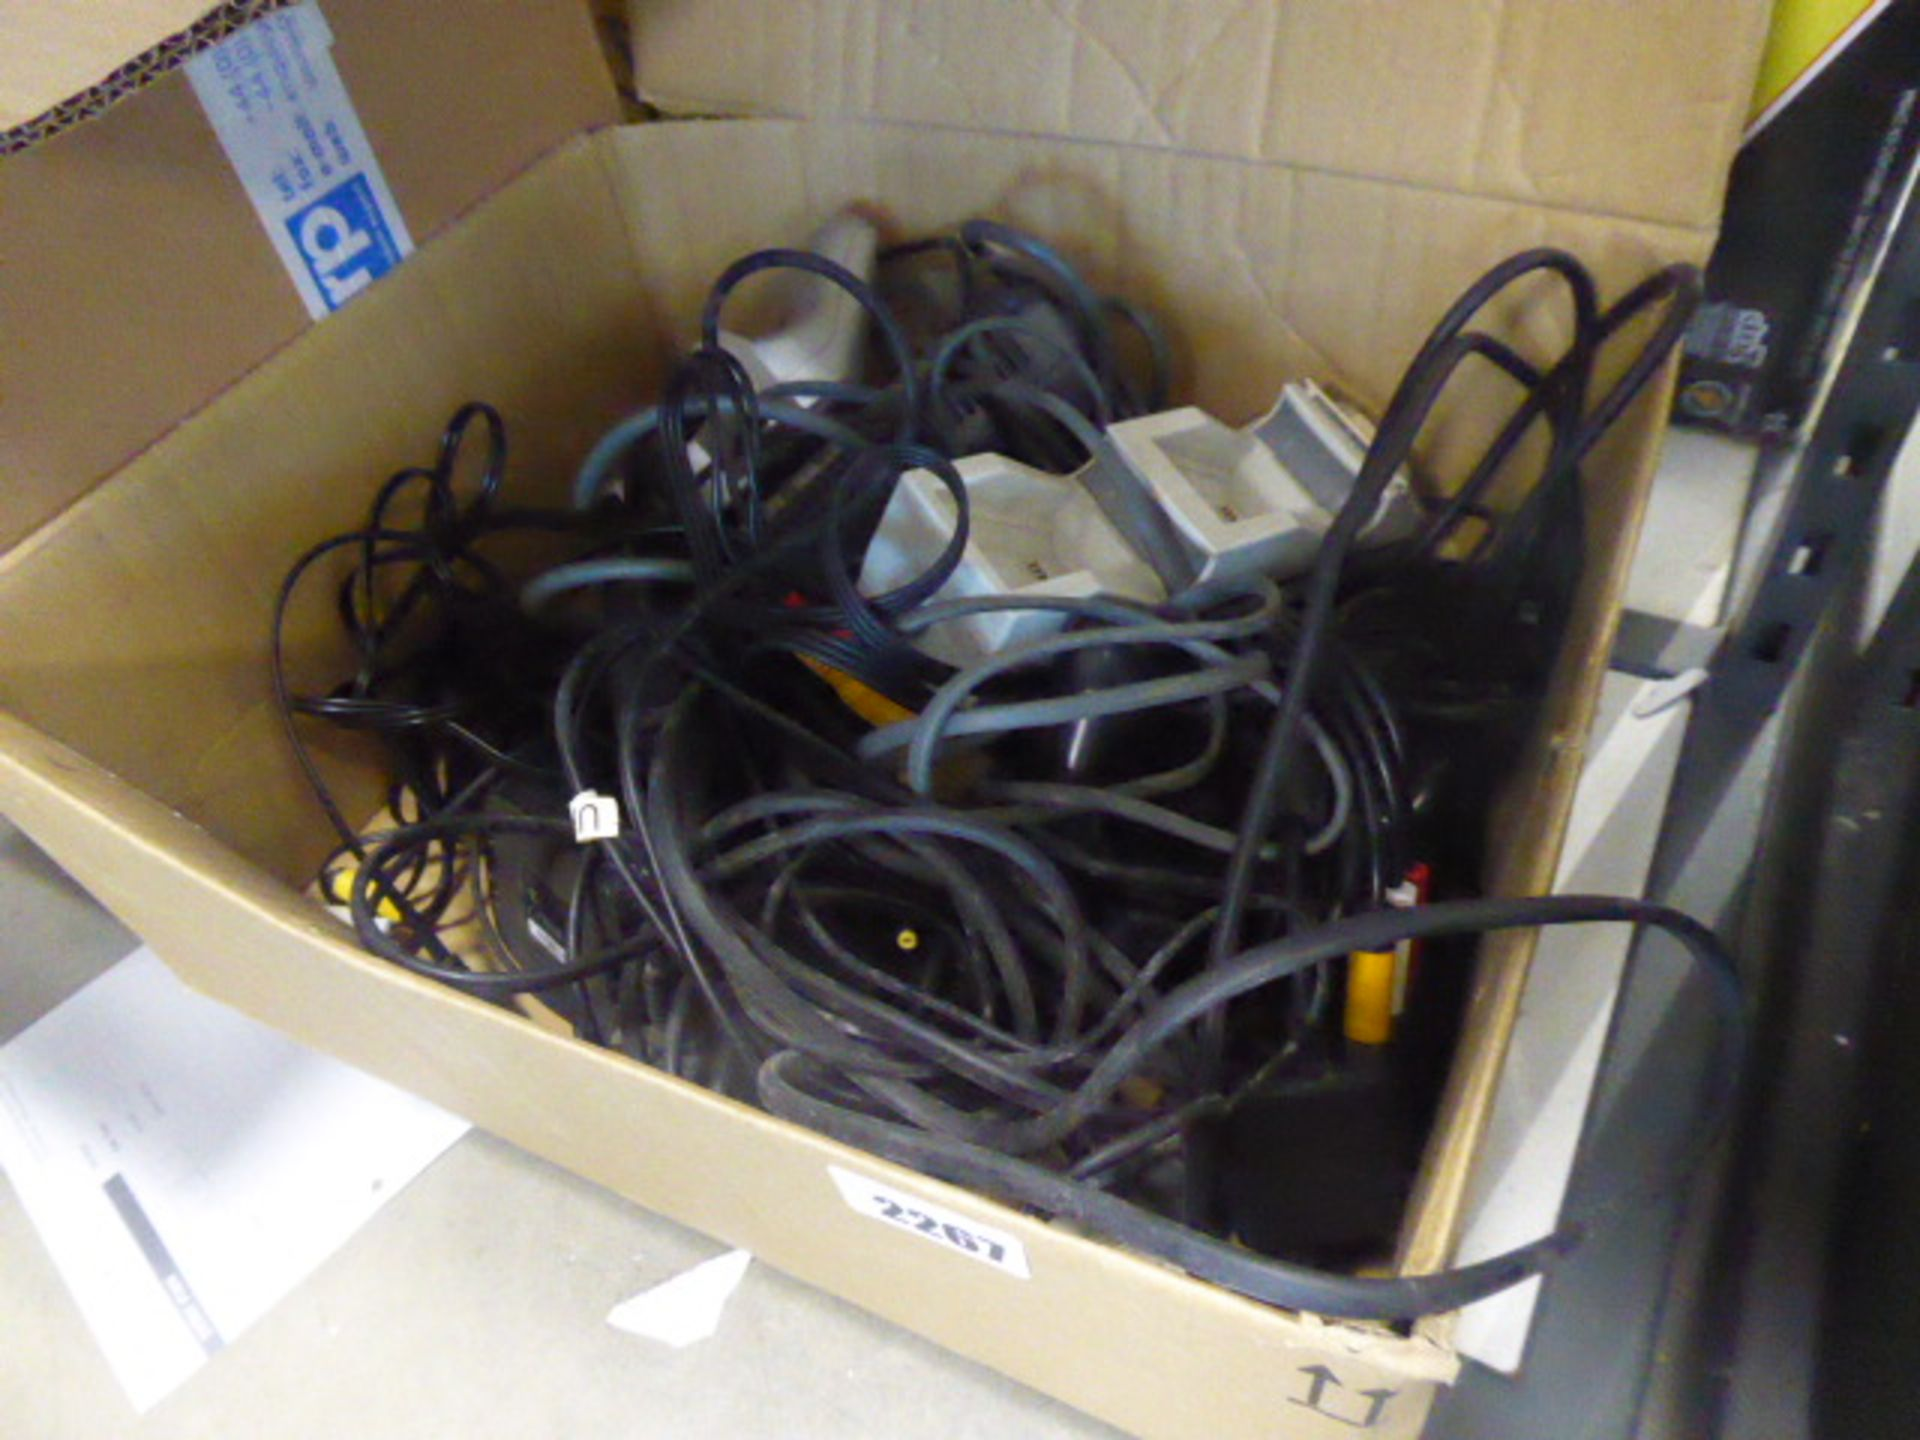 Lot 2267 - Bag containing various cabling, power supplies and controllers